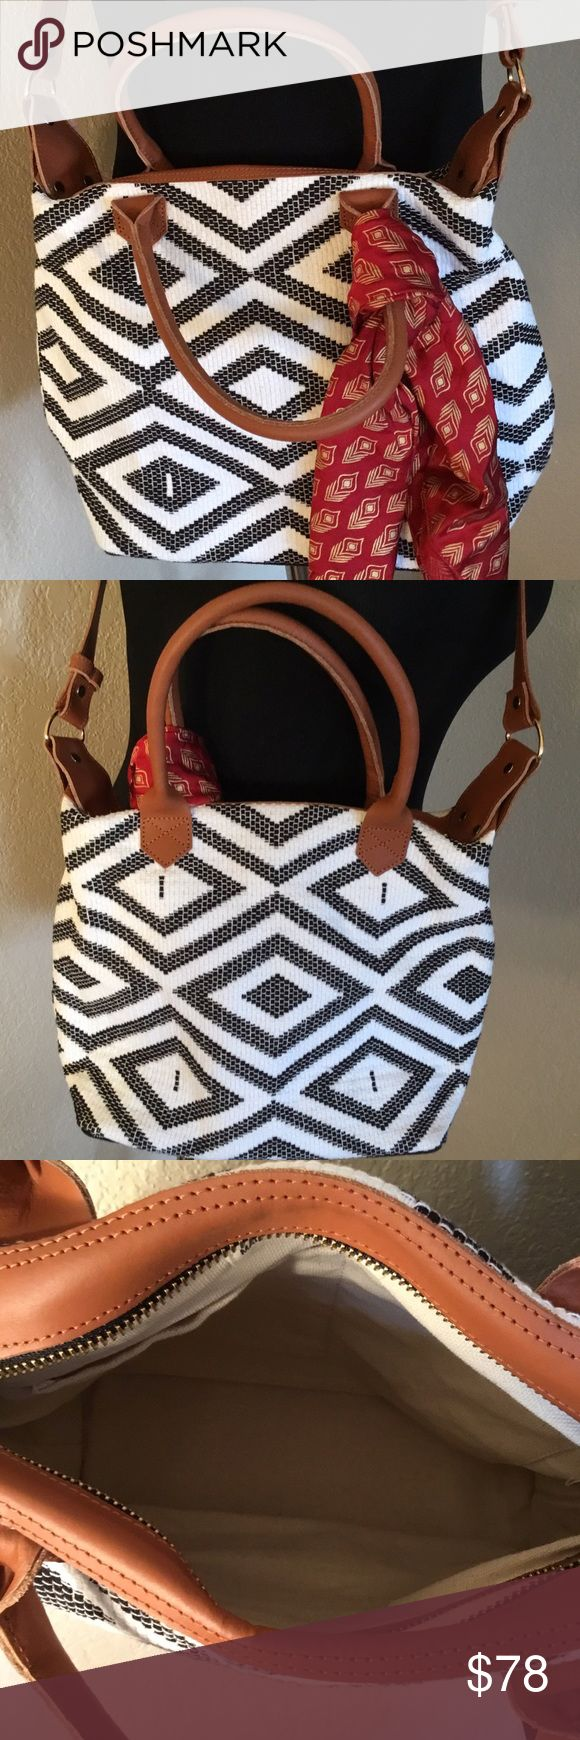 Aztec Shoulder Bag Black/White Aztec bag with brown leather. Straps, heavy duty bag, only carried for less than a week...comes with scarf... measures 14x10x5.5 handle drop 5.5 , cross body strap 17 , zip top closure, 2 slip pockets, an 1 zipper pocket...beautiful bag .. Tribe Alive Bags Shoulder Bags